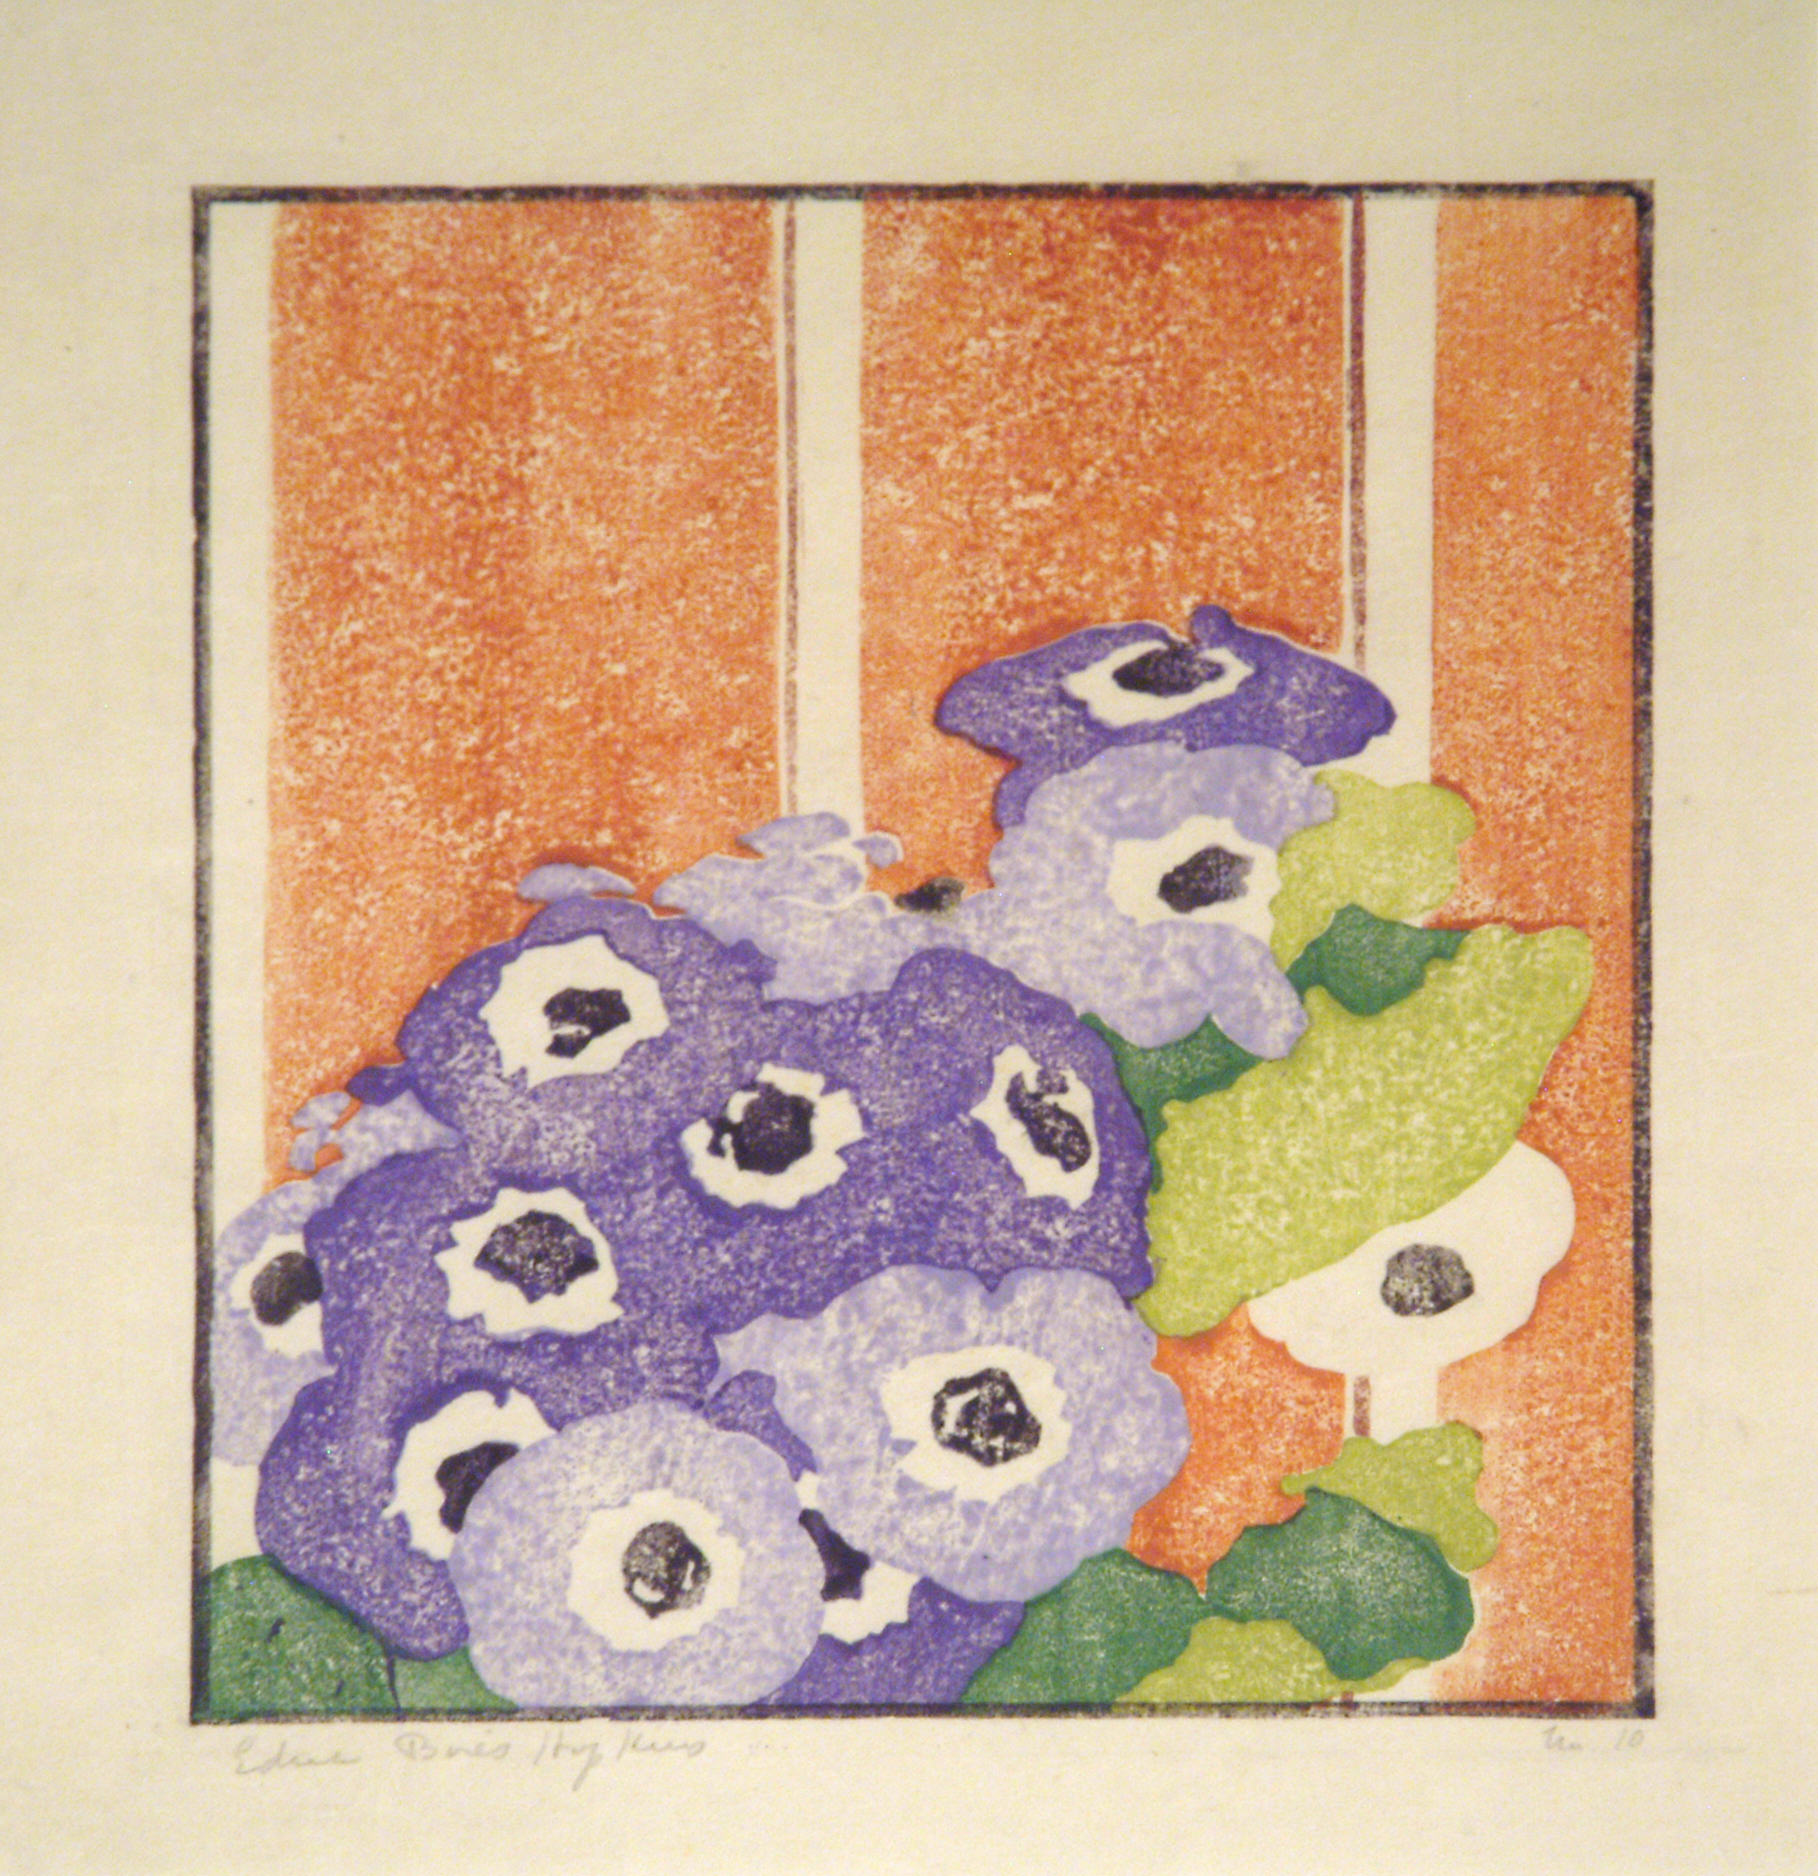 Edna Boies Hopkins | CINERARIA | color woodblock | 9-3/4 x 8-1/2'' | 1915 | Permanent collection of the Springfield Museum of Art